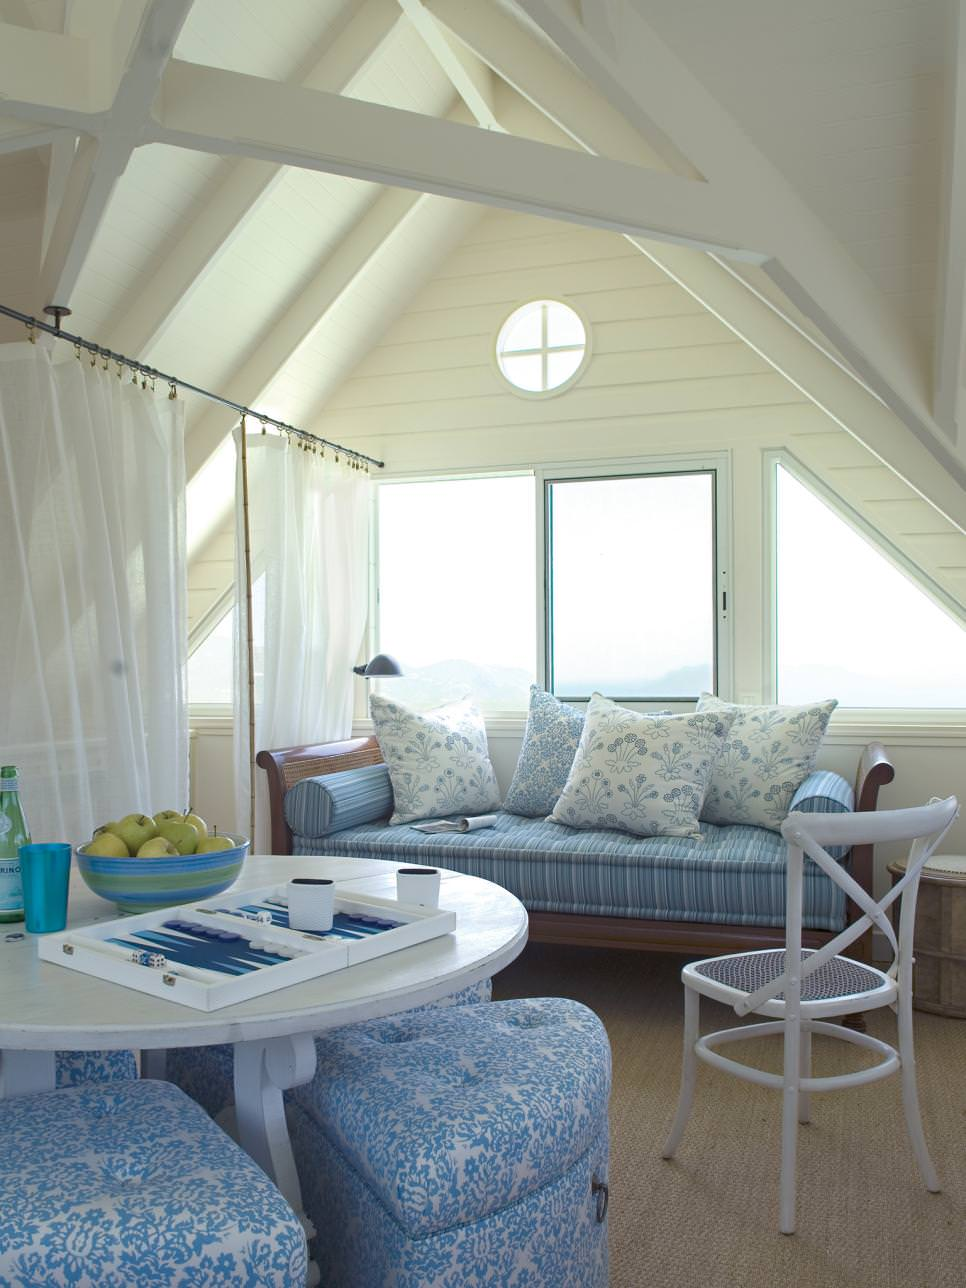 decorated daybed in coastal attic bedroom